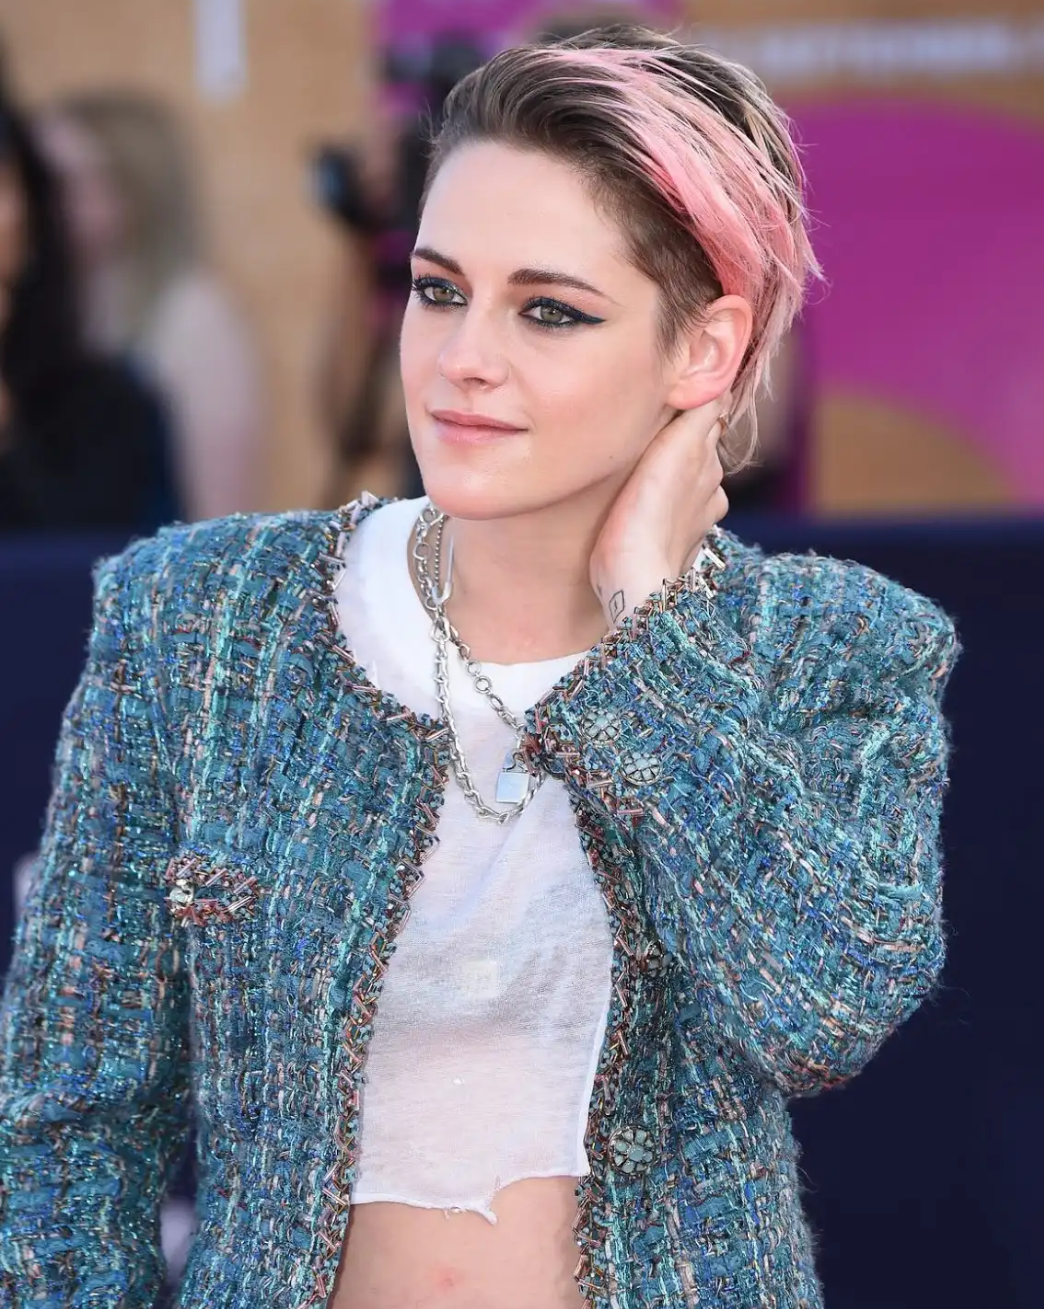 Kristen Stewart Rocks The Red Carpet In Shorts And Pink Dyed Hair At Deauville American Film